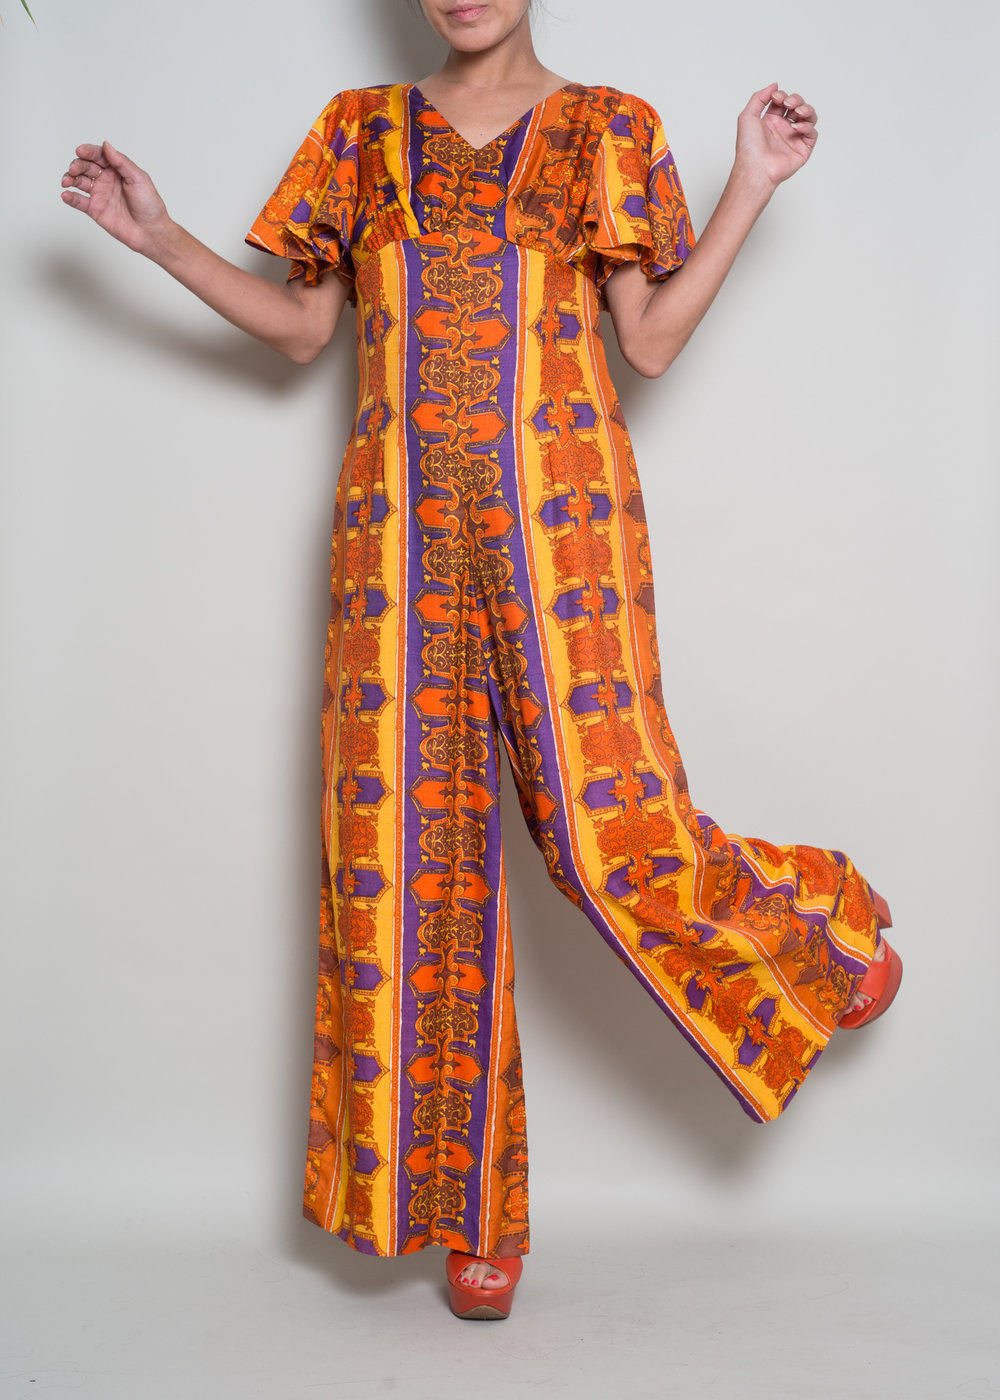 1970s Medallion Printed Jumpsuit - From MADLY VINTAGE